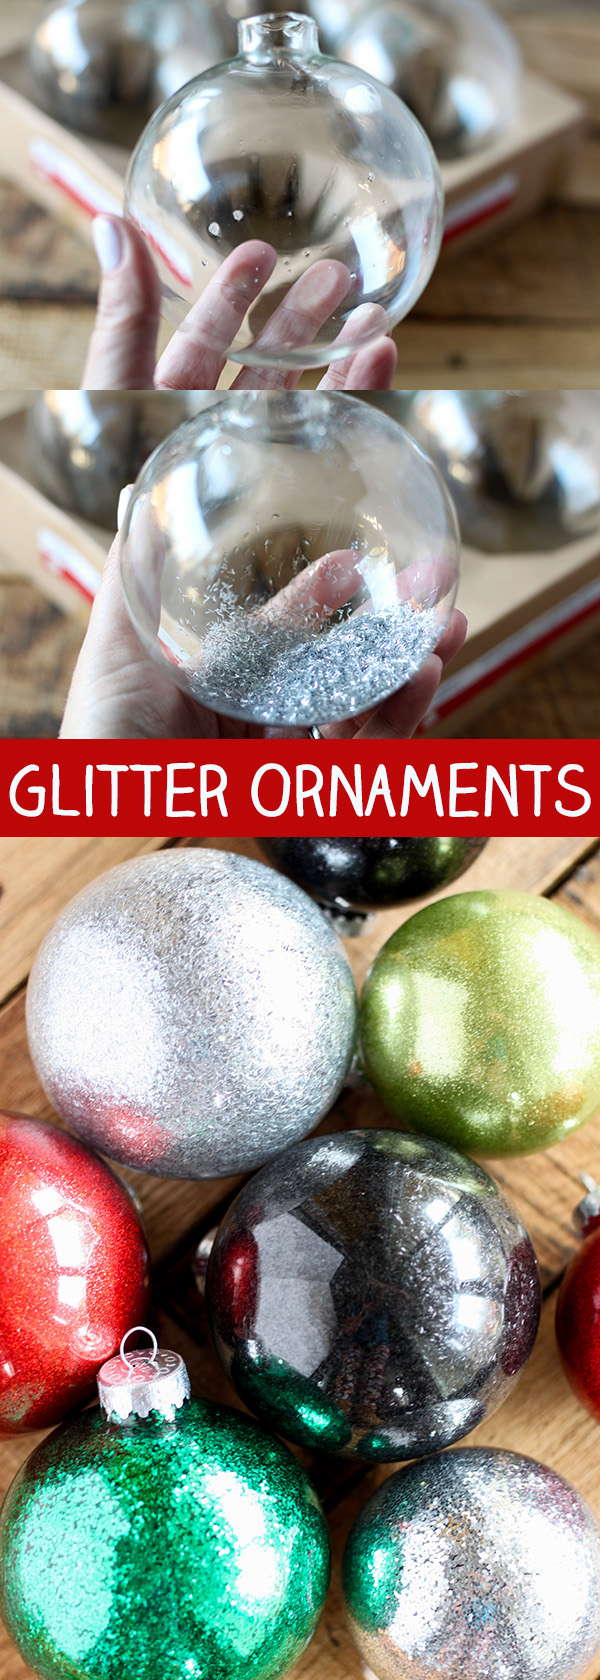 DIY Glitter Ornaments for Christmas - easy Christmas craft!